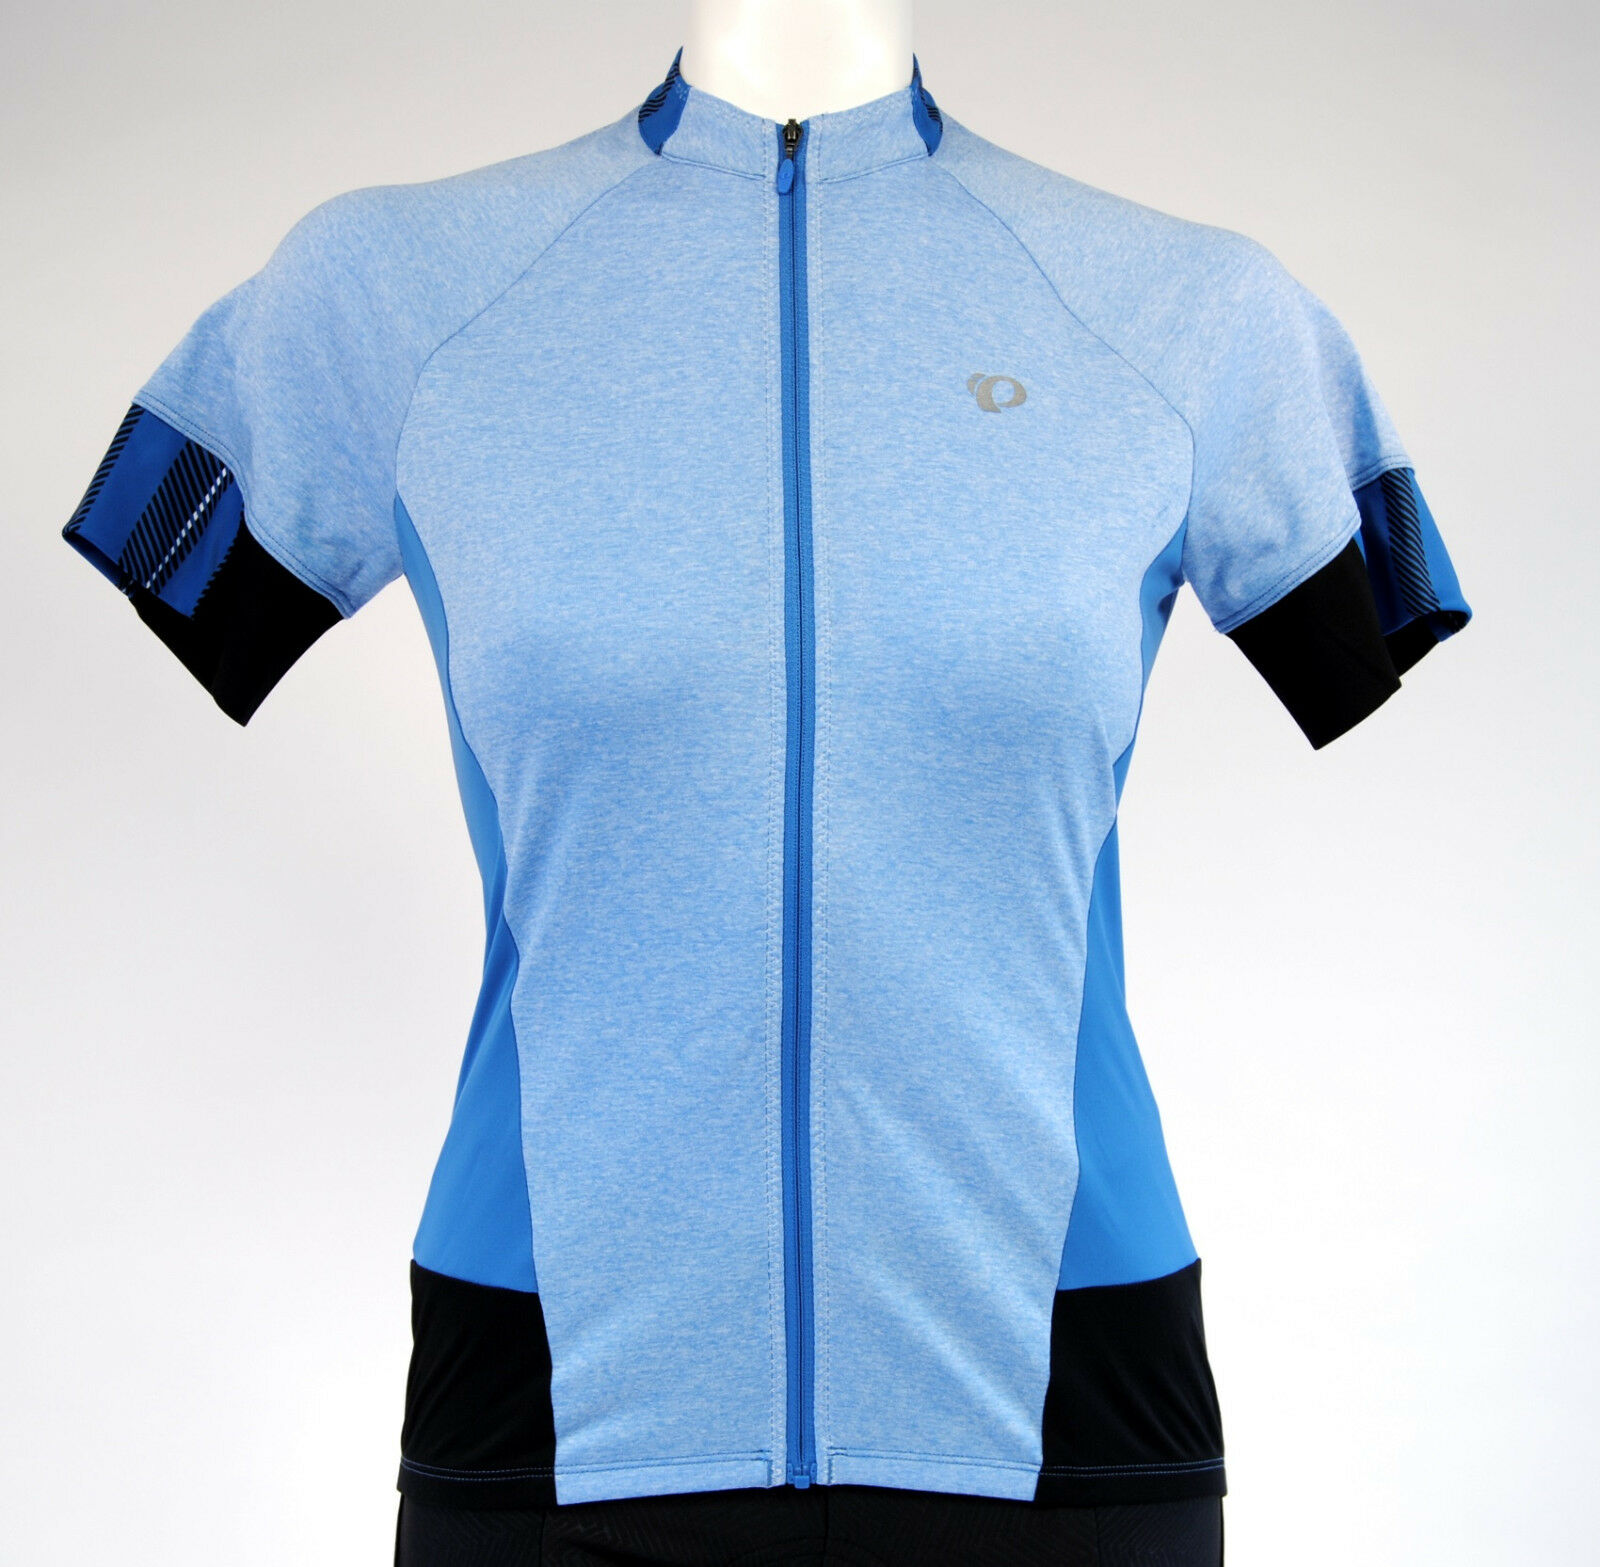 Pearl Izumi Select Escape Cycling SS Jersey,Women's, Large, Heather bluee